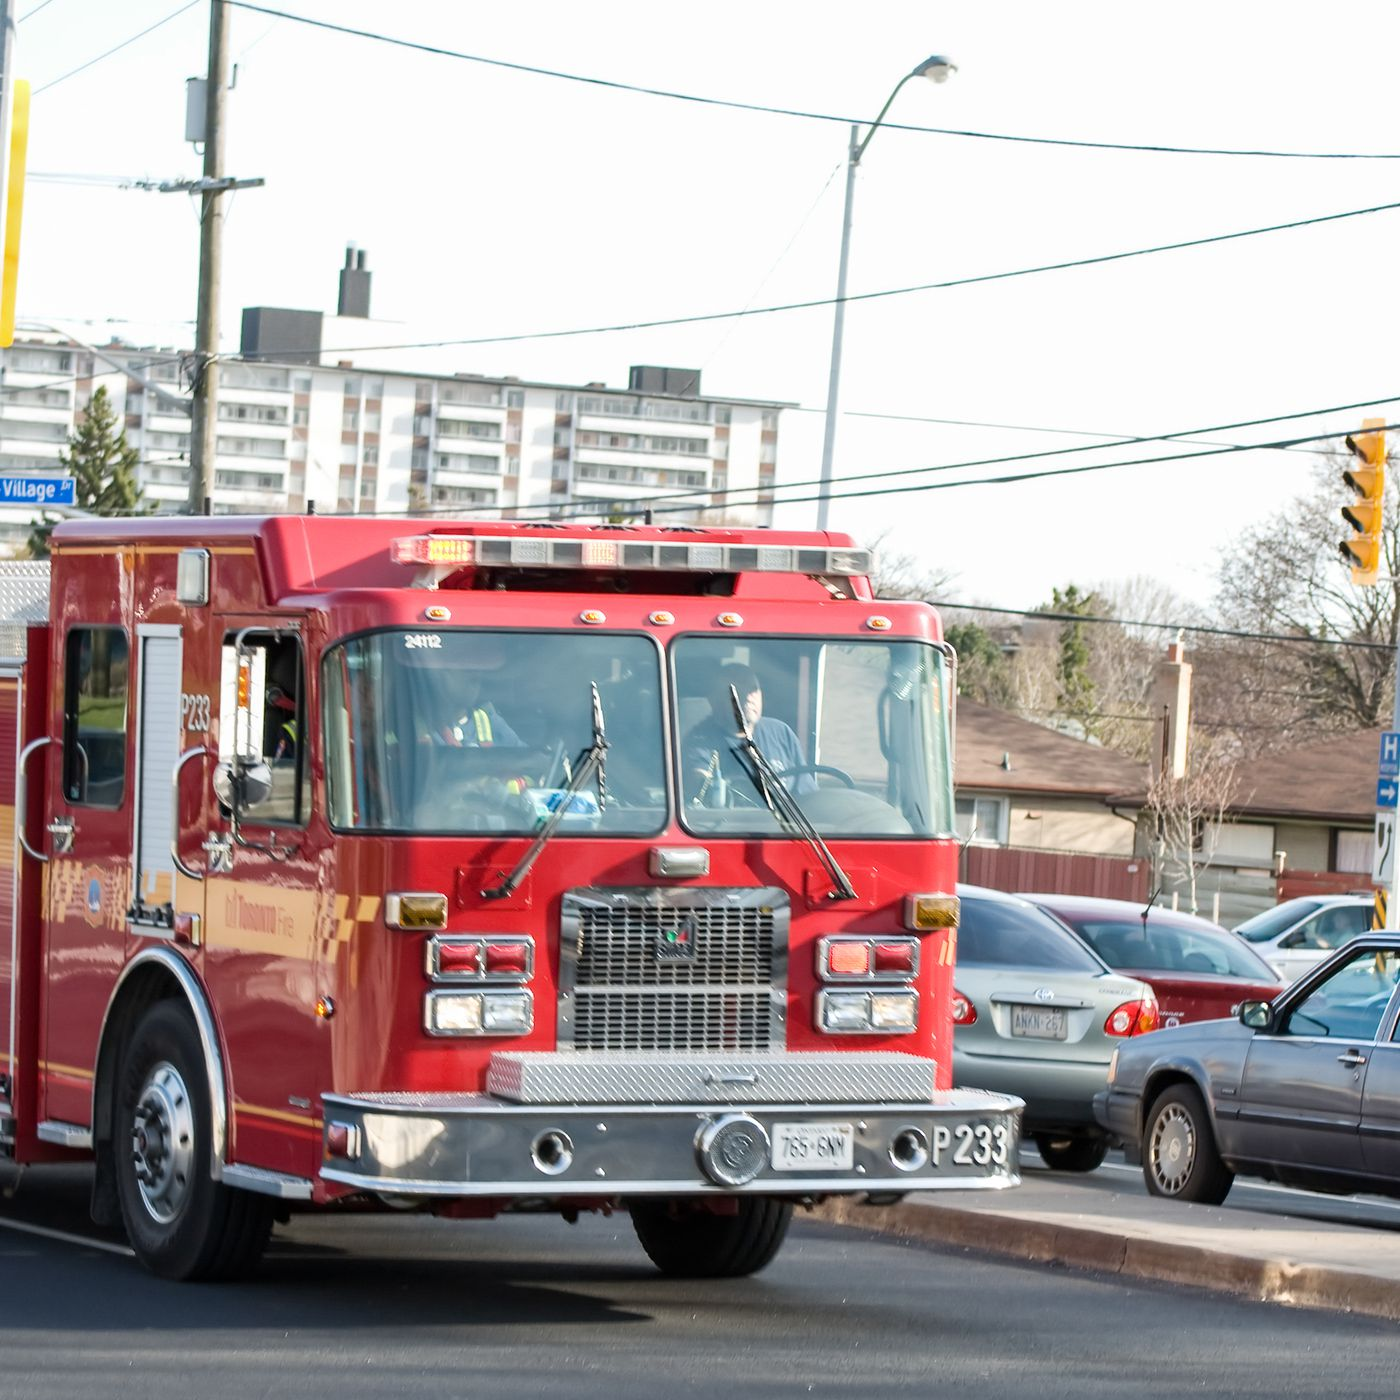 Firefighters do a lot less firefighting than they used to